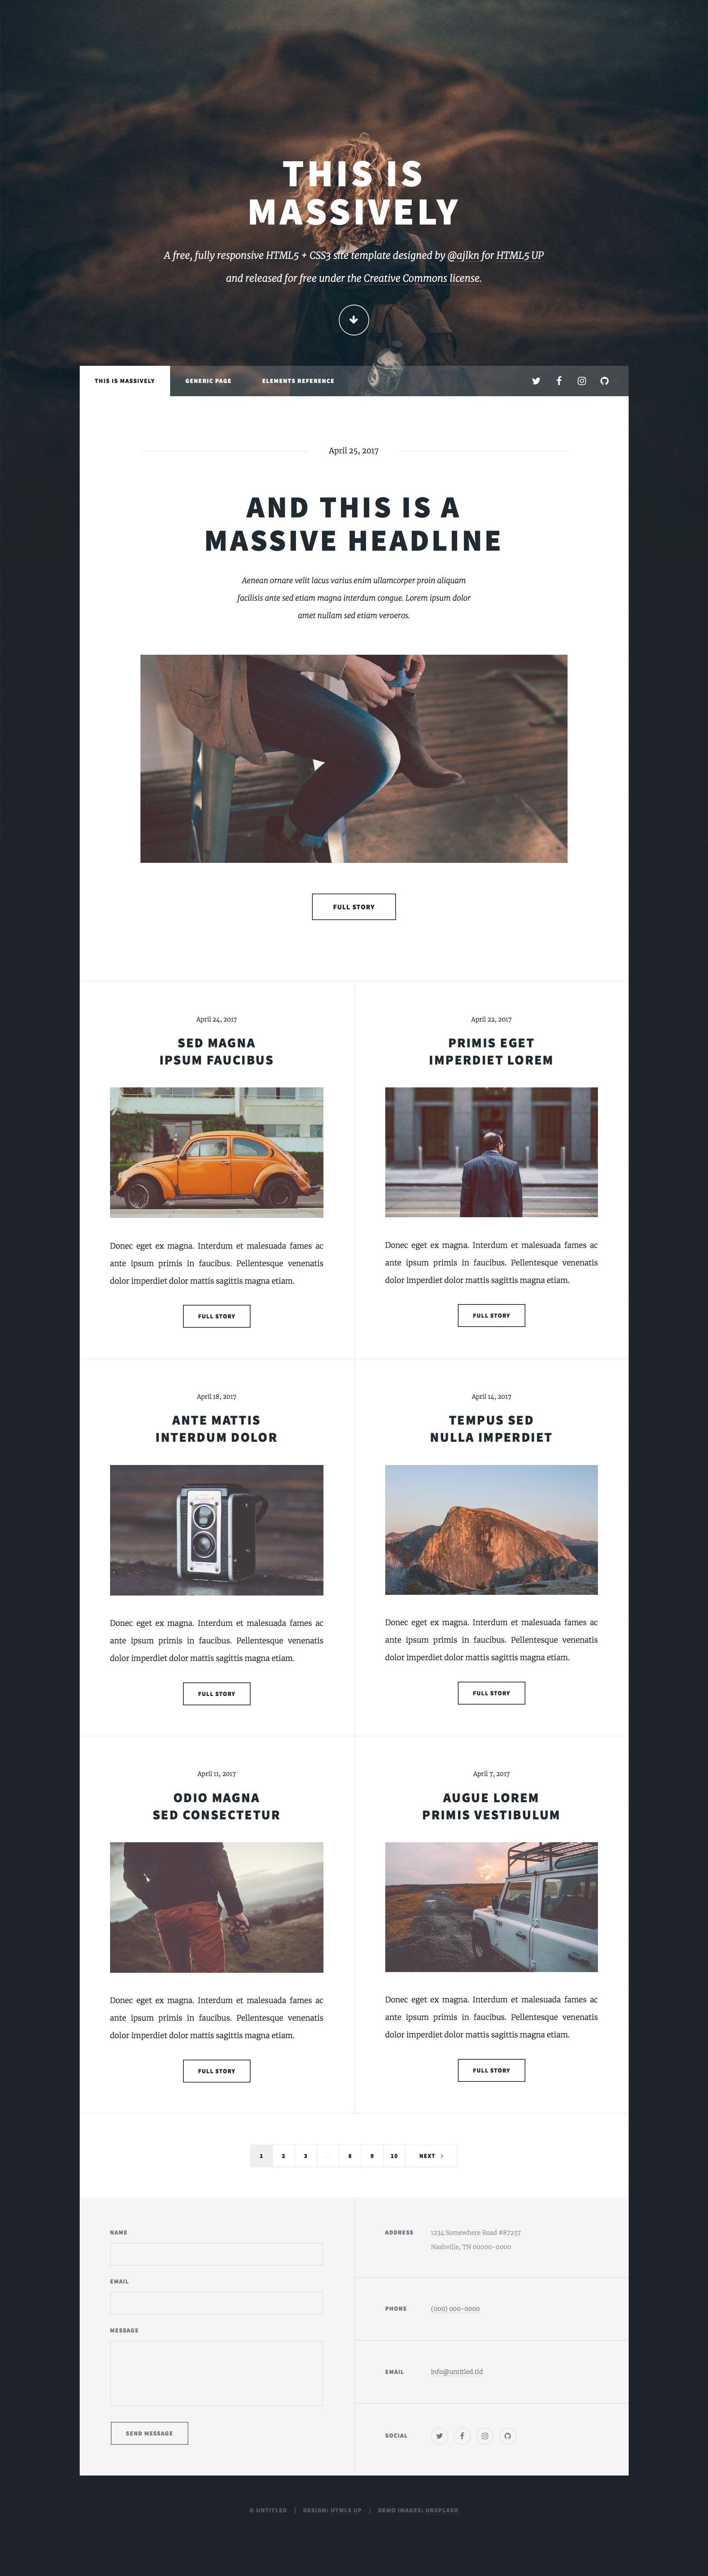 Massively is a content-heavy and article-oriented free responsive HTML5 personal template. It's design built around a huge background with scroll effects. Massively HTML 5 template comes with 3 pages: an index page, an article page and a component page. Massively HTML5 template is retina ready and it has a custom-built Responsive CSS Grid System.